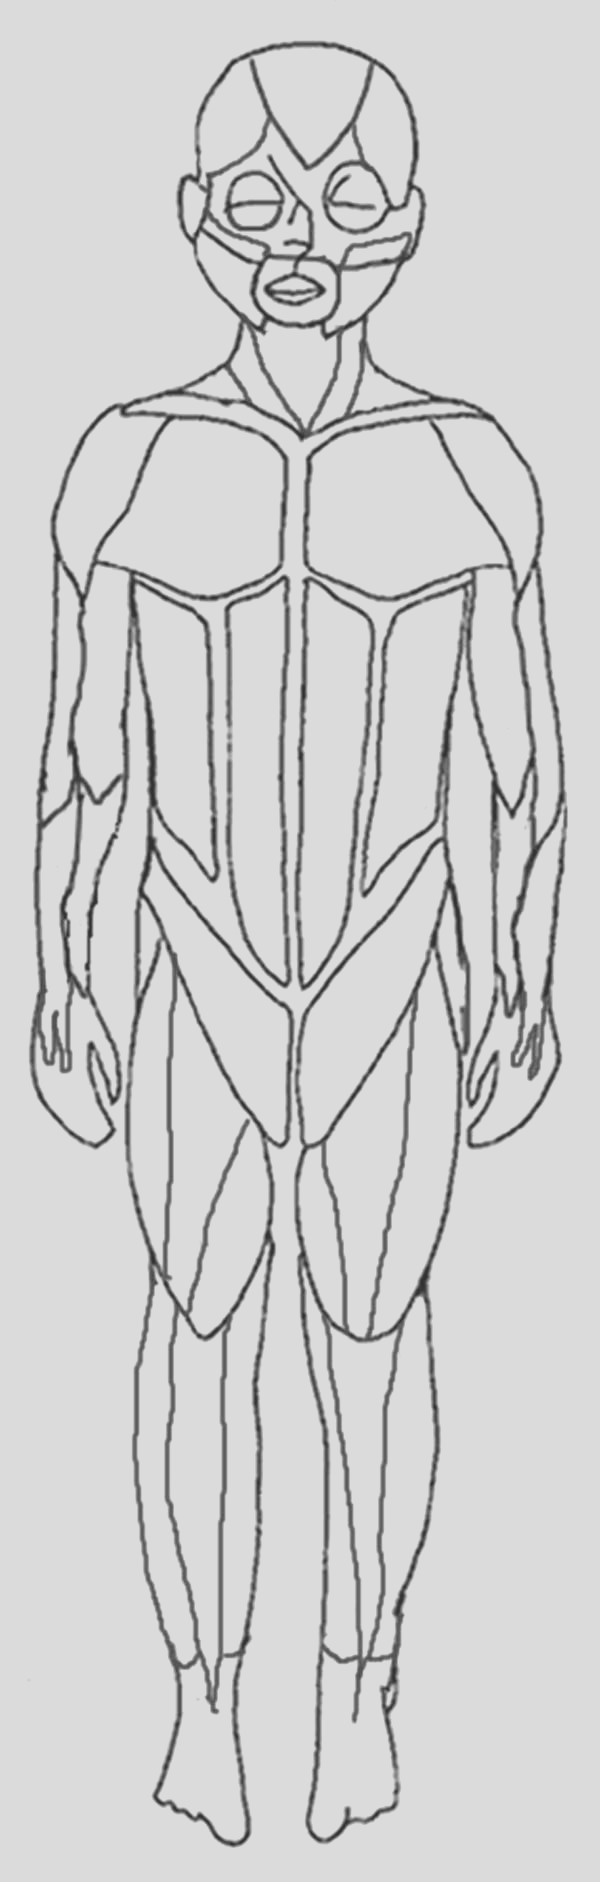 muscular system coloring pages free